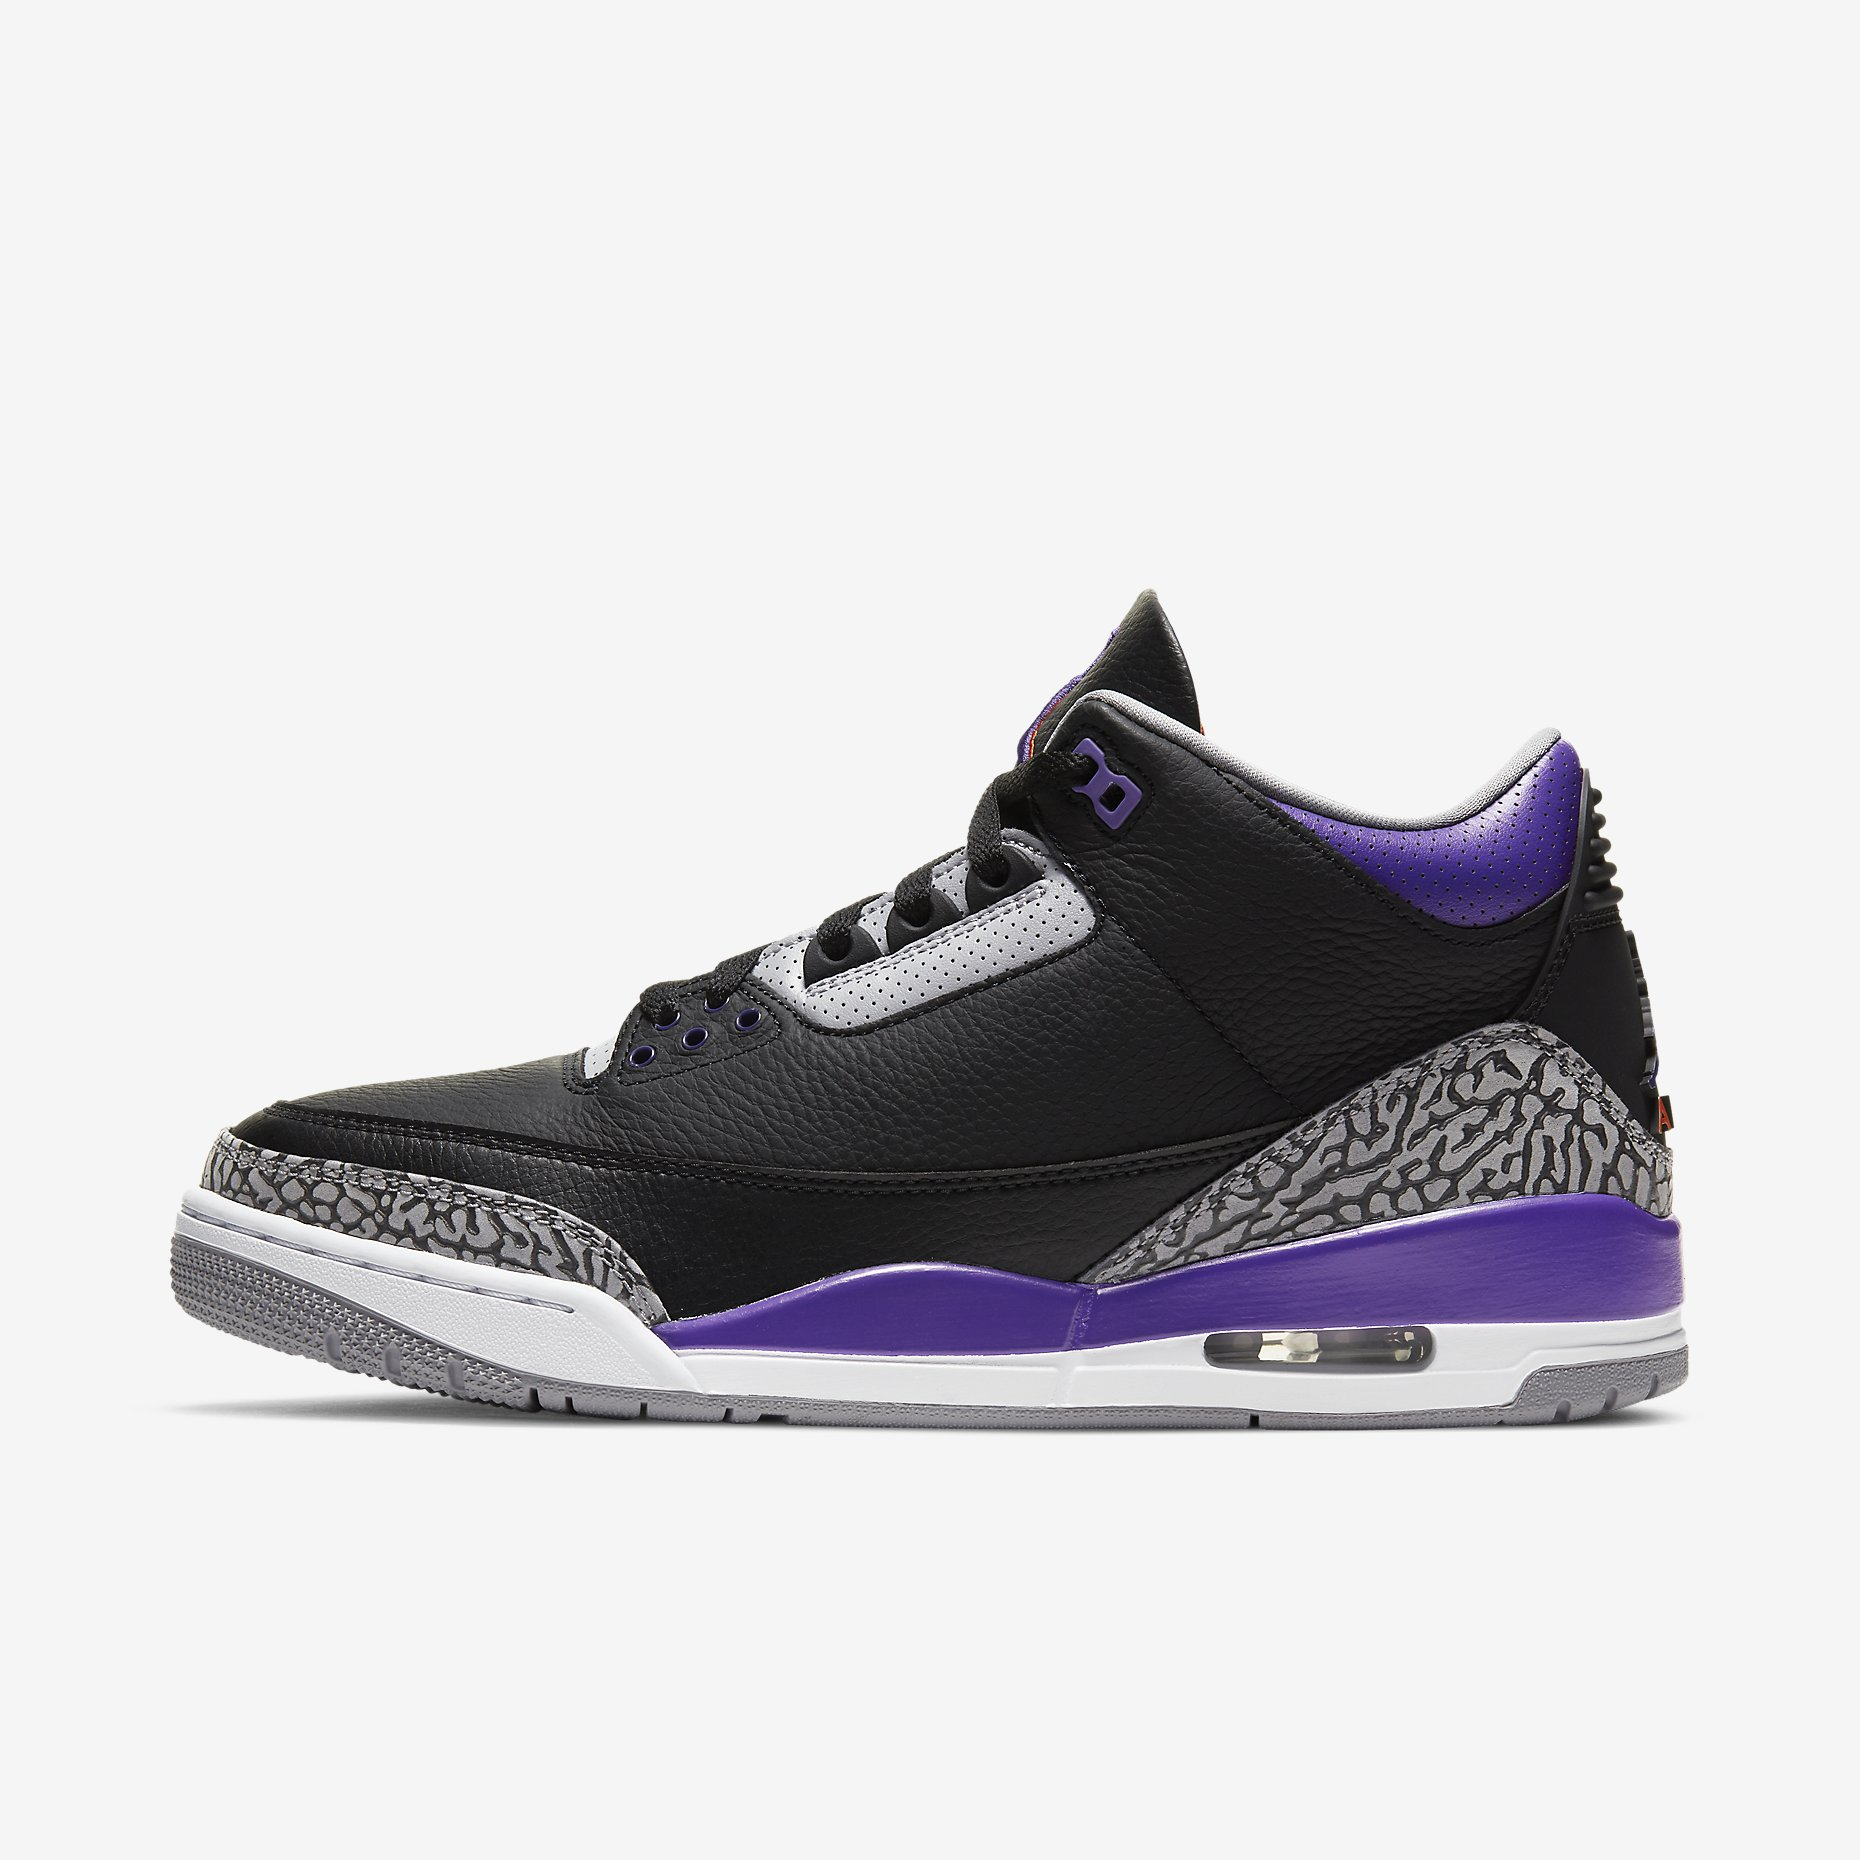 Air Jordan 3 Retro 'Court Purple'}